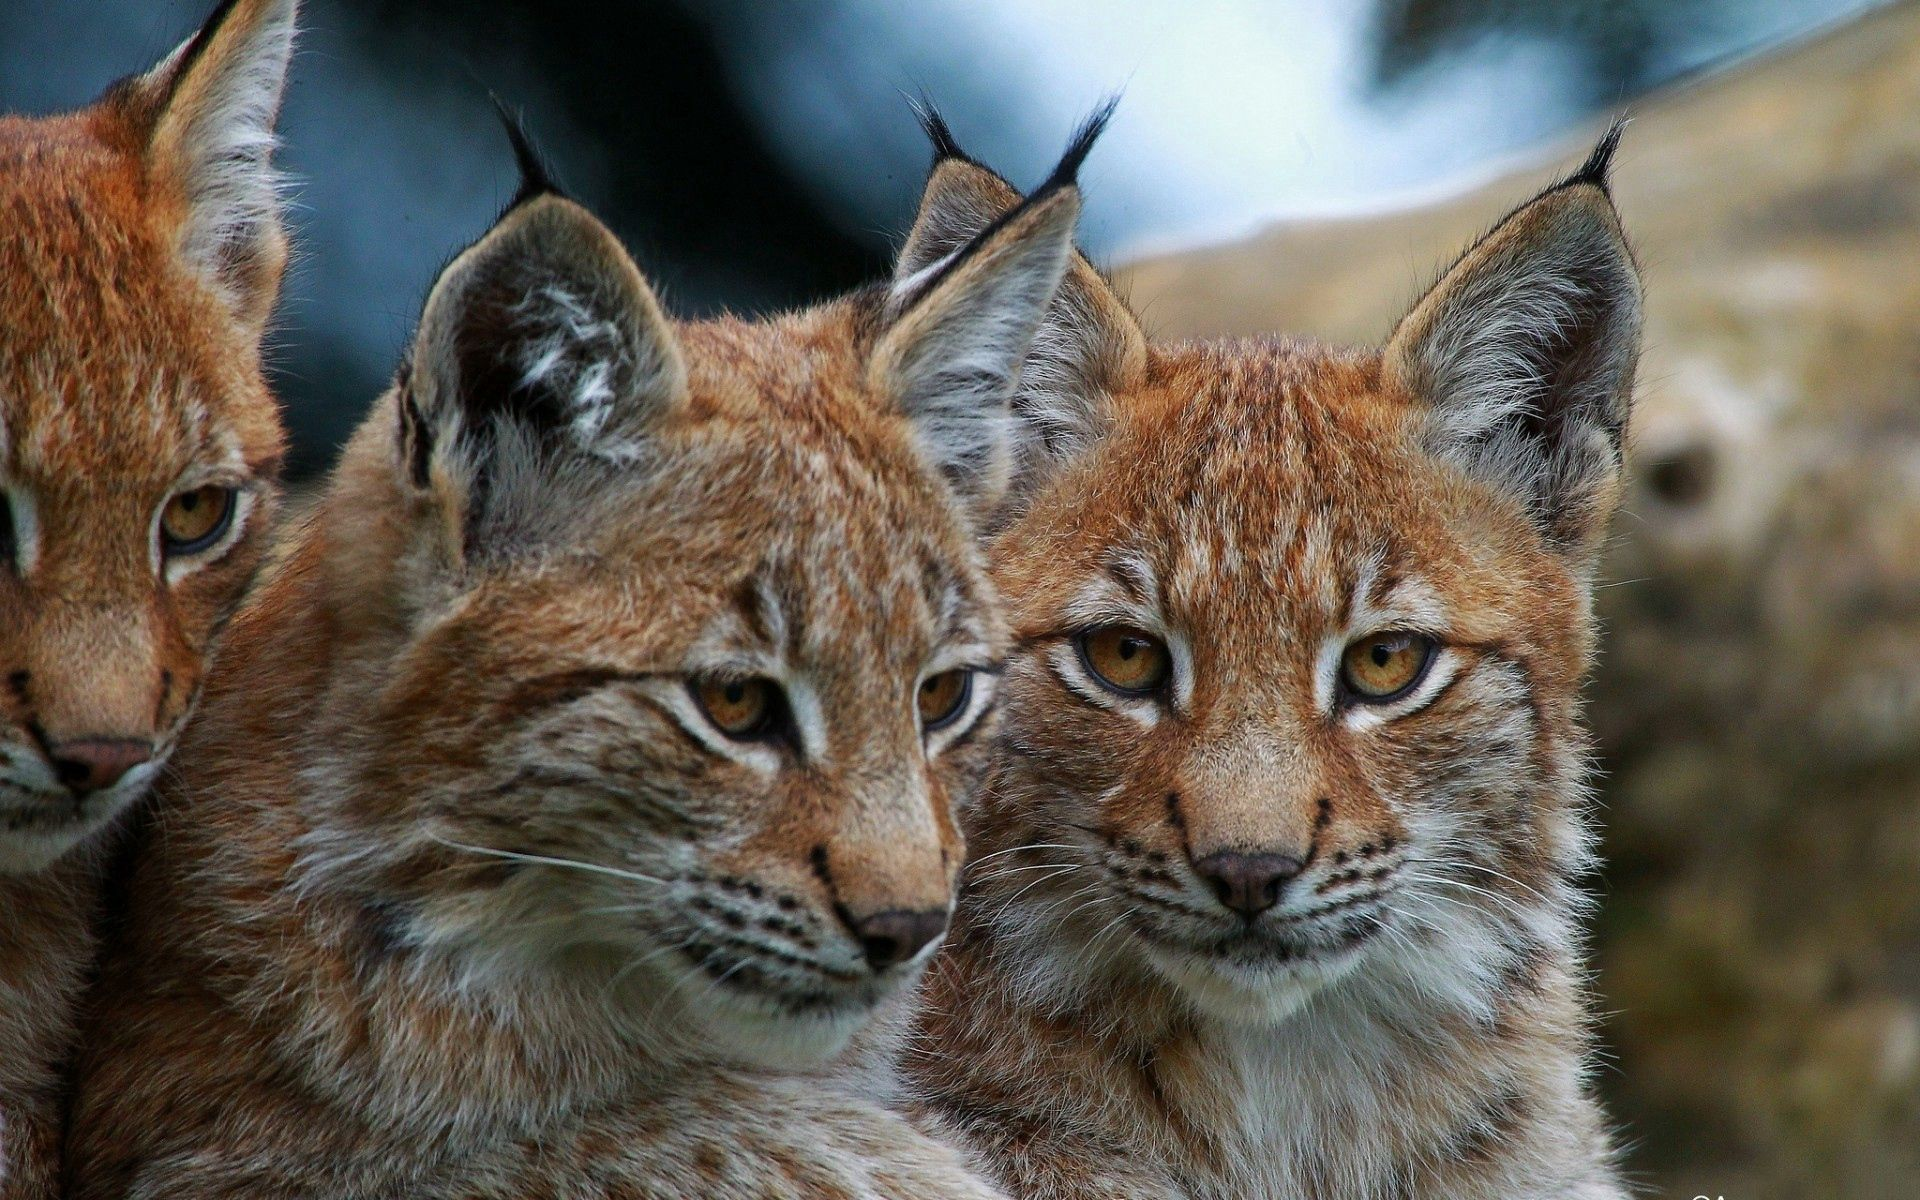 117065 download wallpaper Animals, Big Cats, Muzzle, Sight, Opinion, Bobcats screensavers and pictures for free